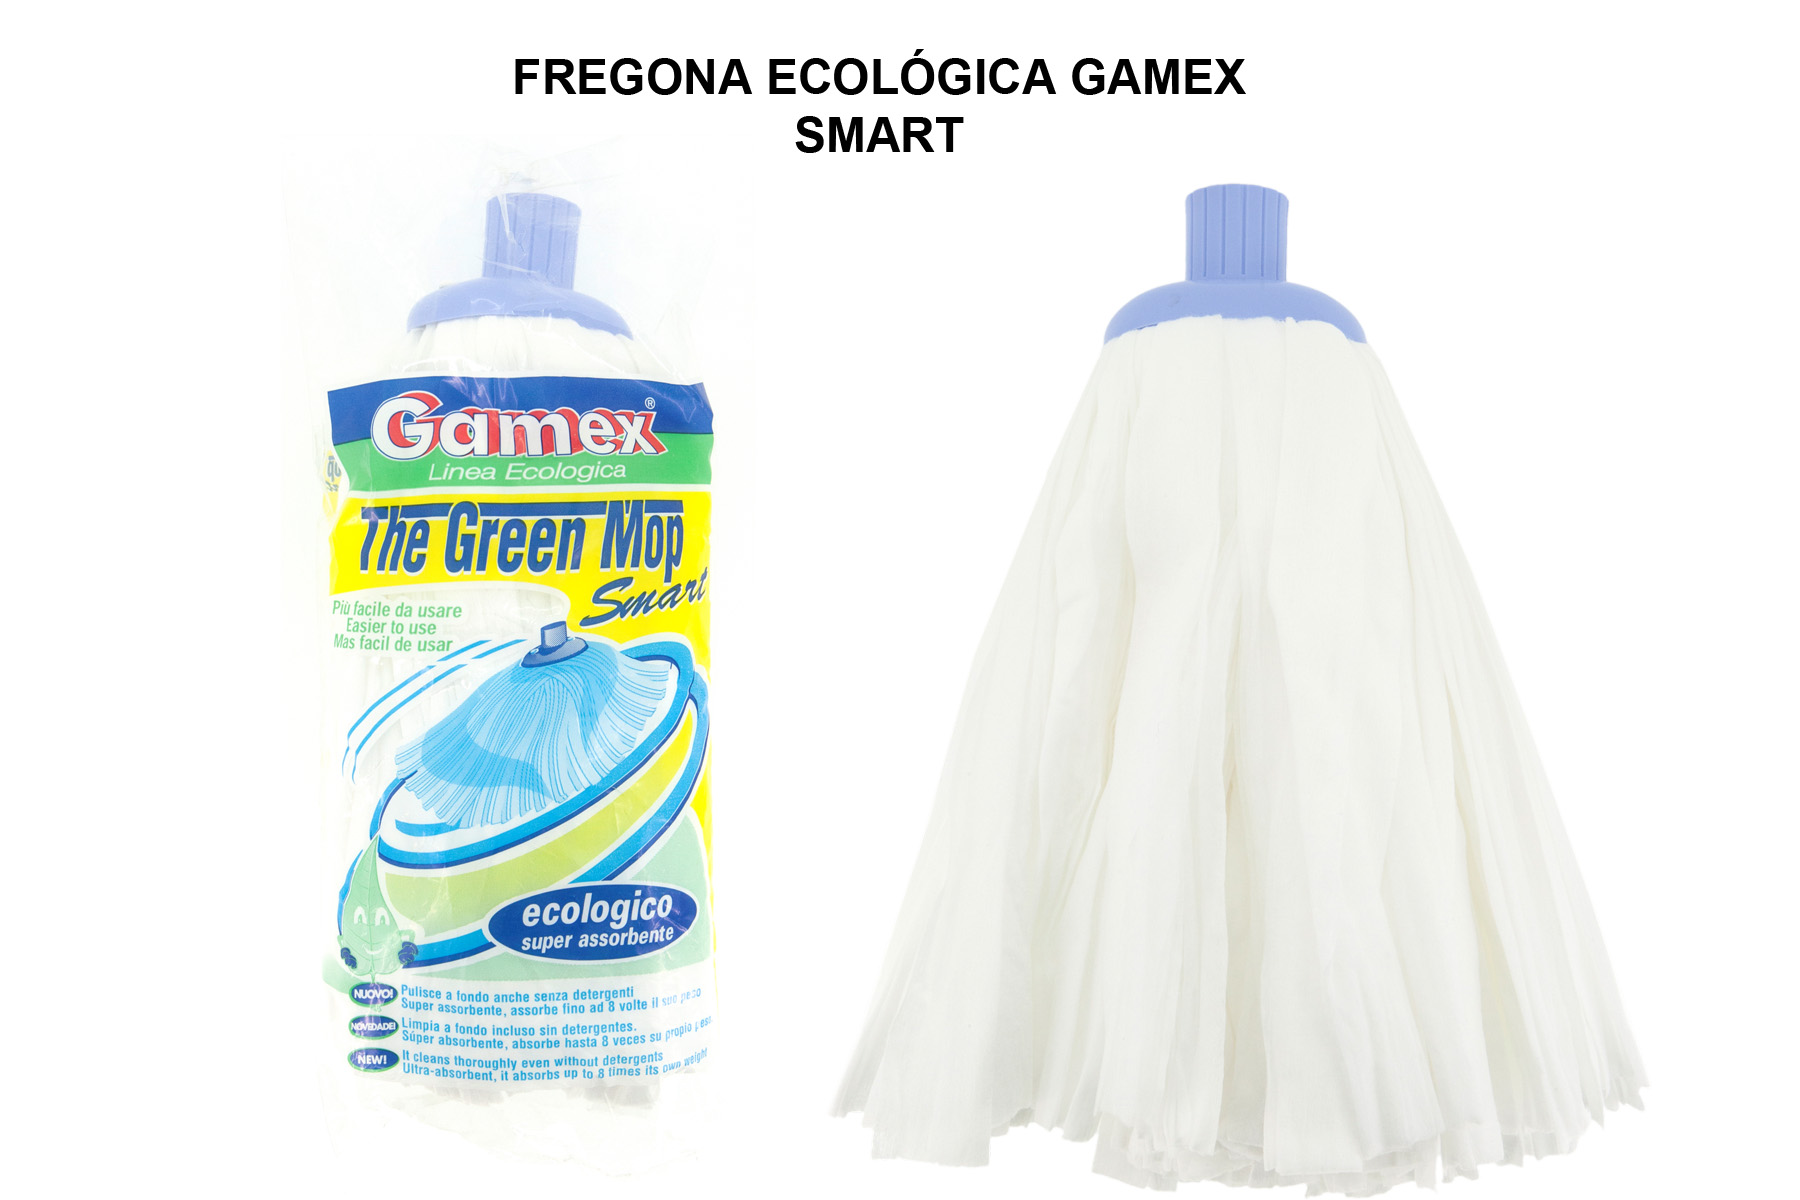 FREGONA ECOLOGICA GAMEX SMART